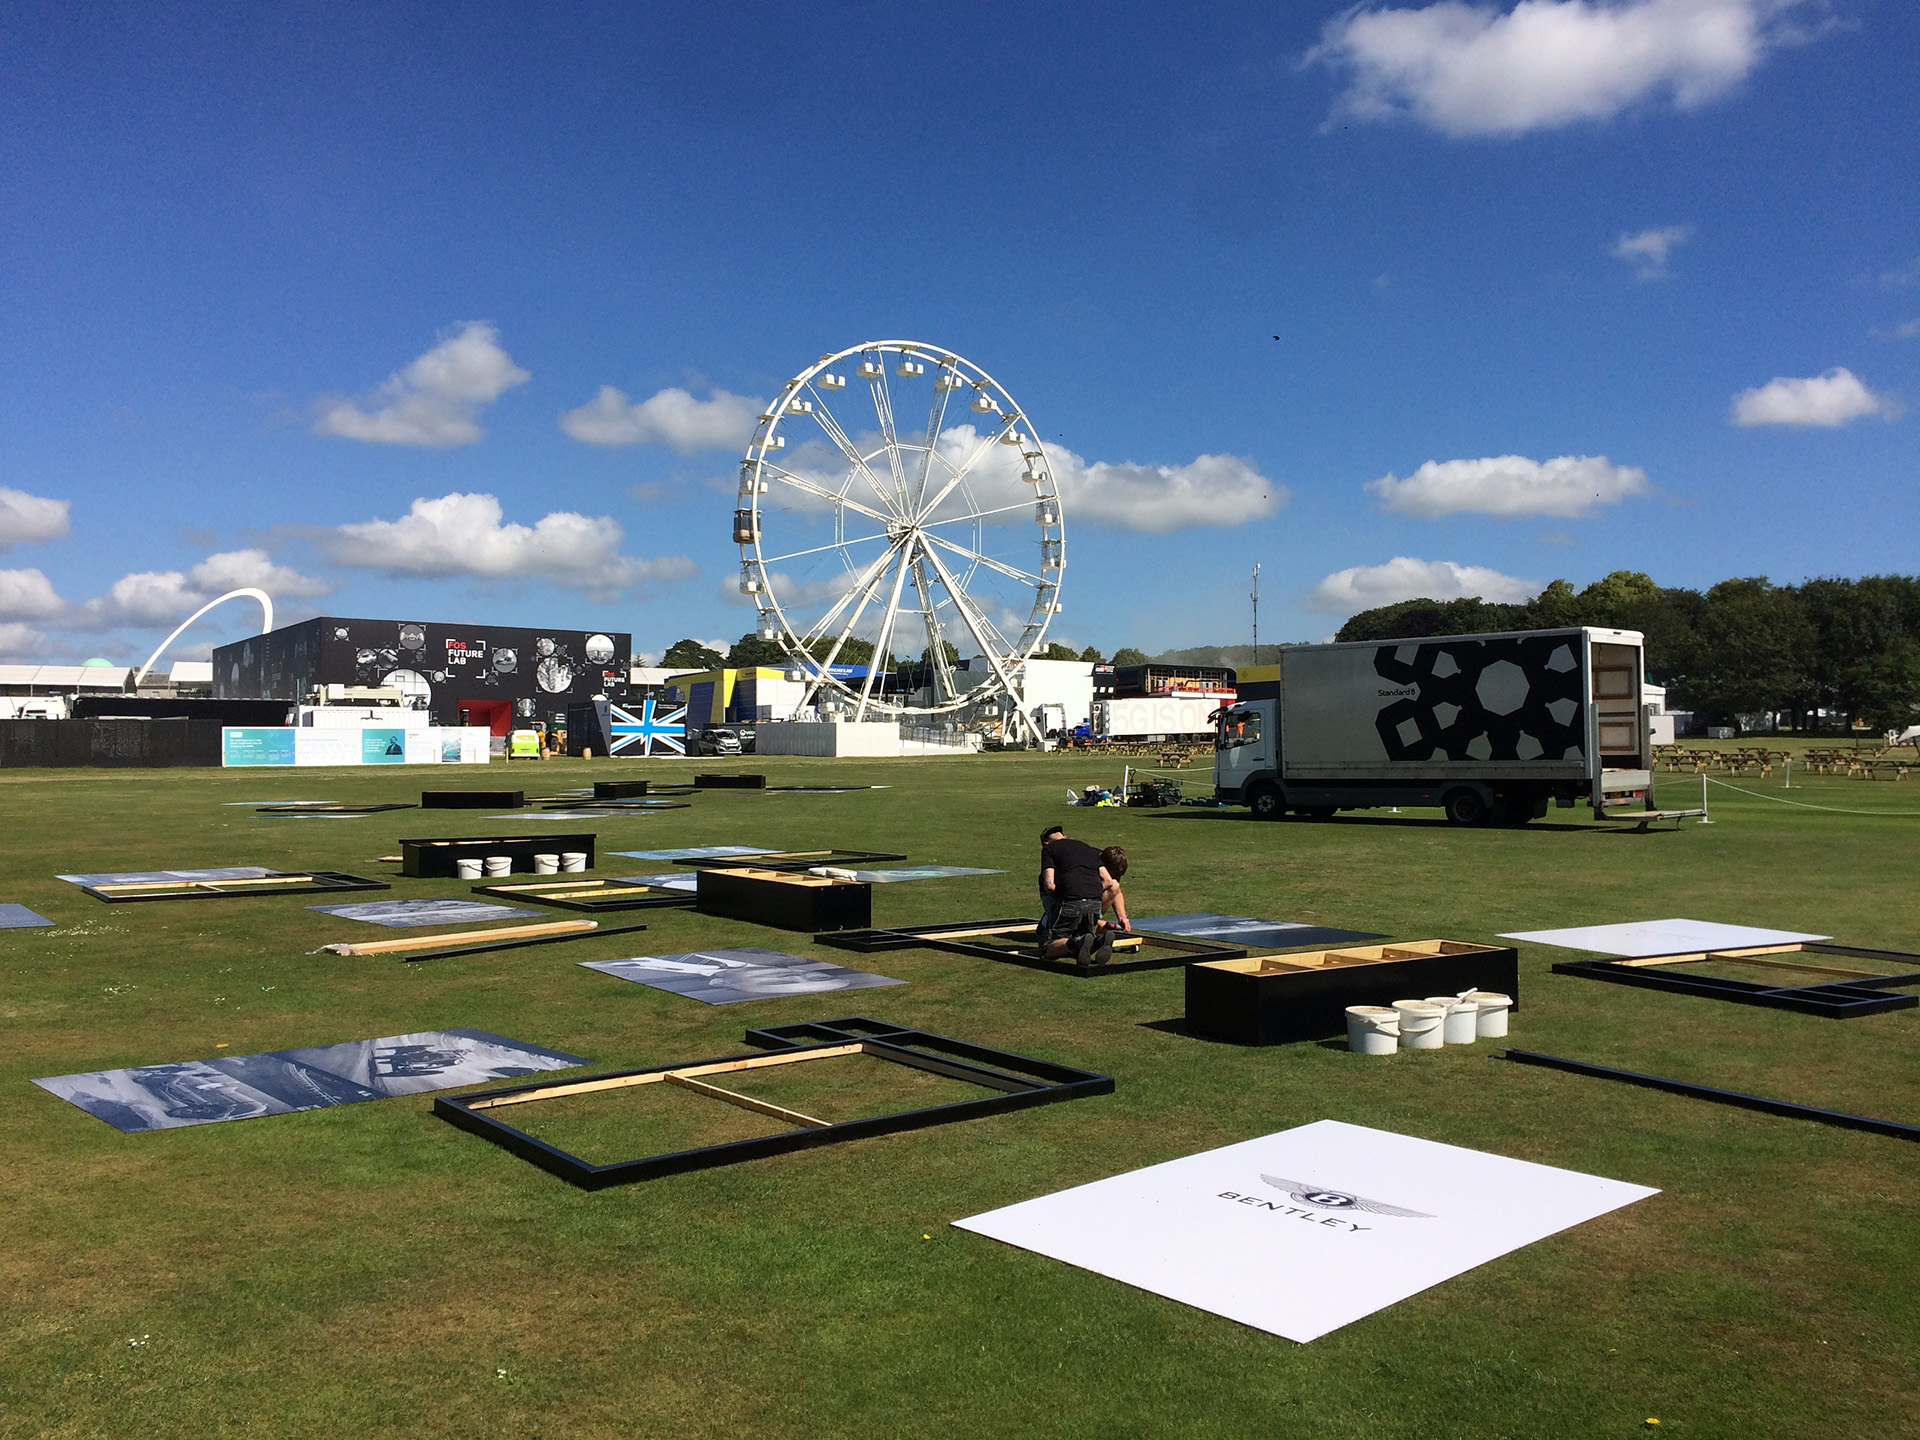 Standard8 team installing outdoor exhibition at Goodwood or the Festival of Speed